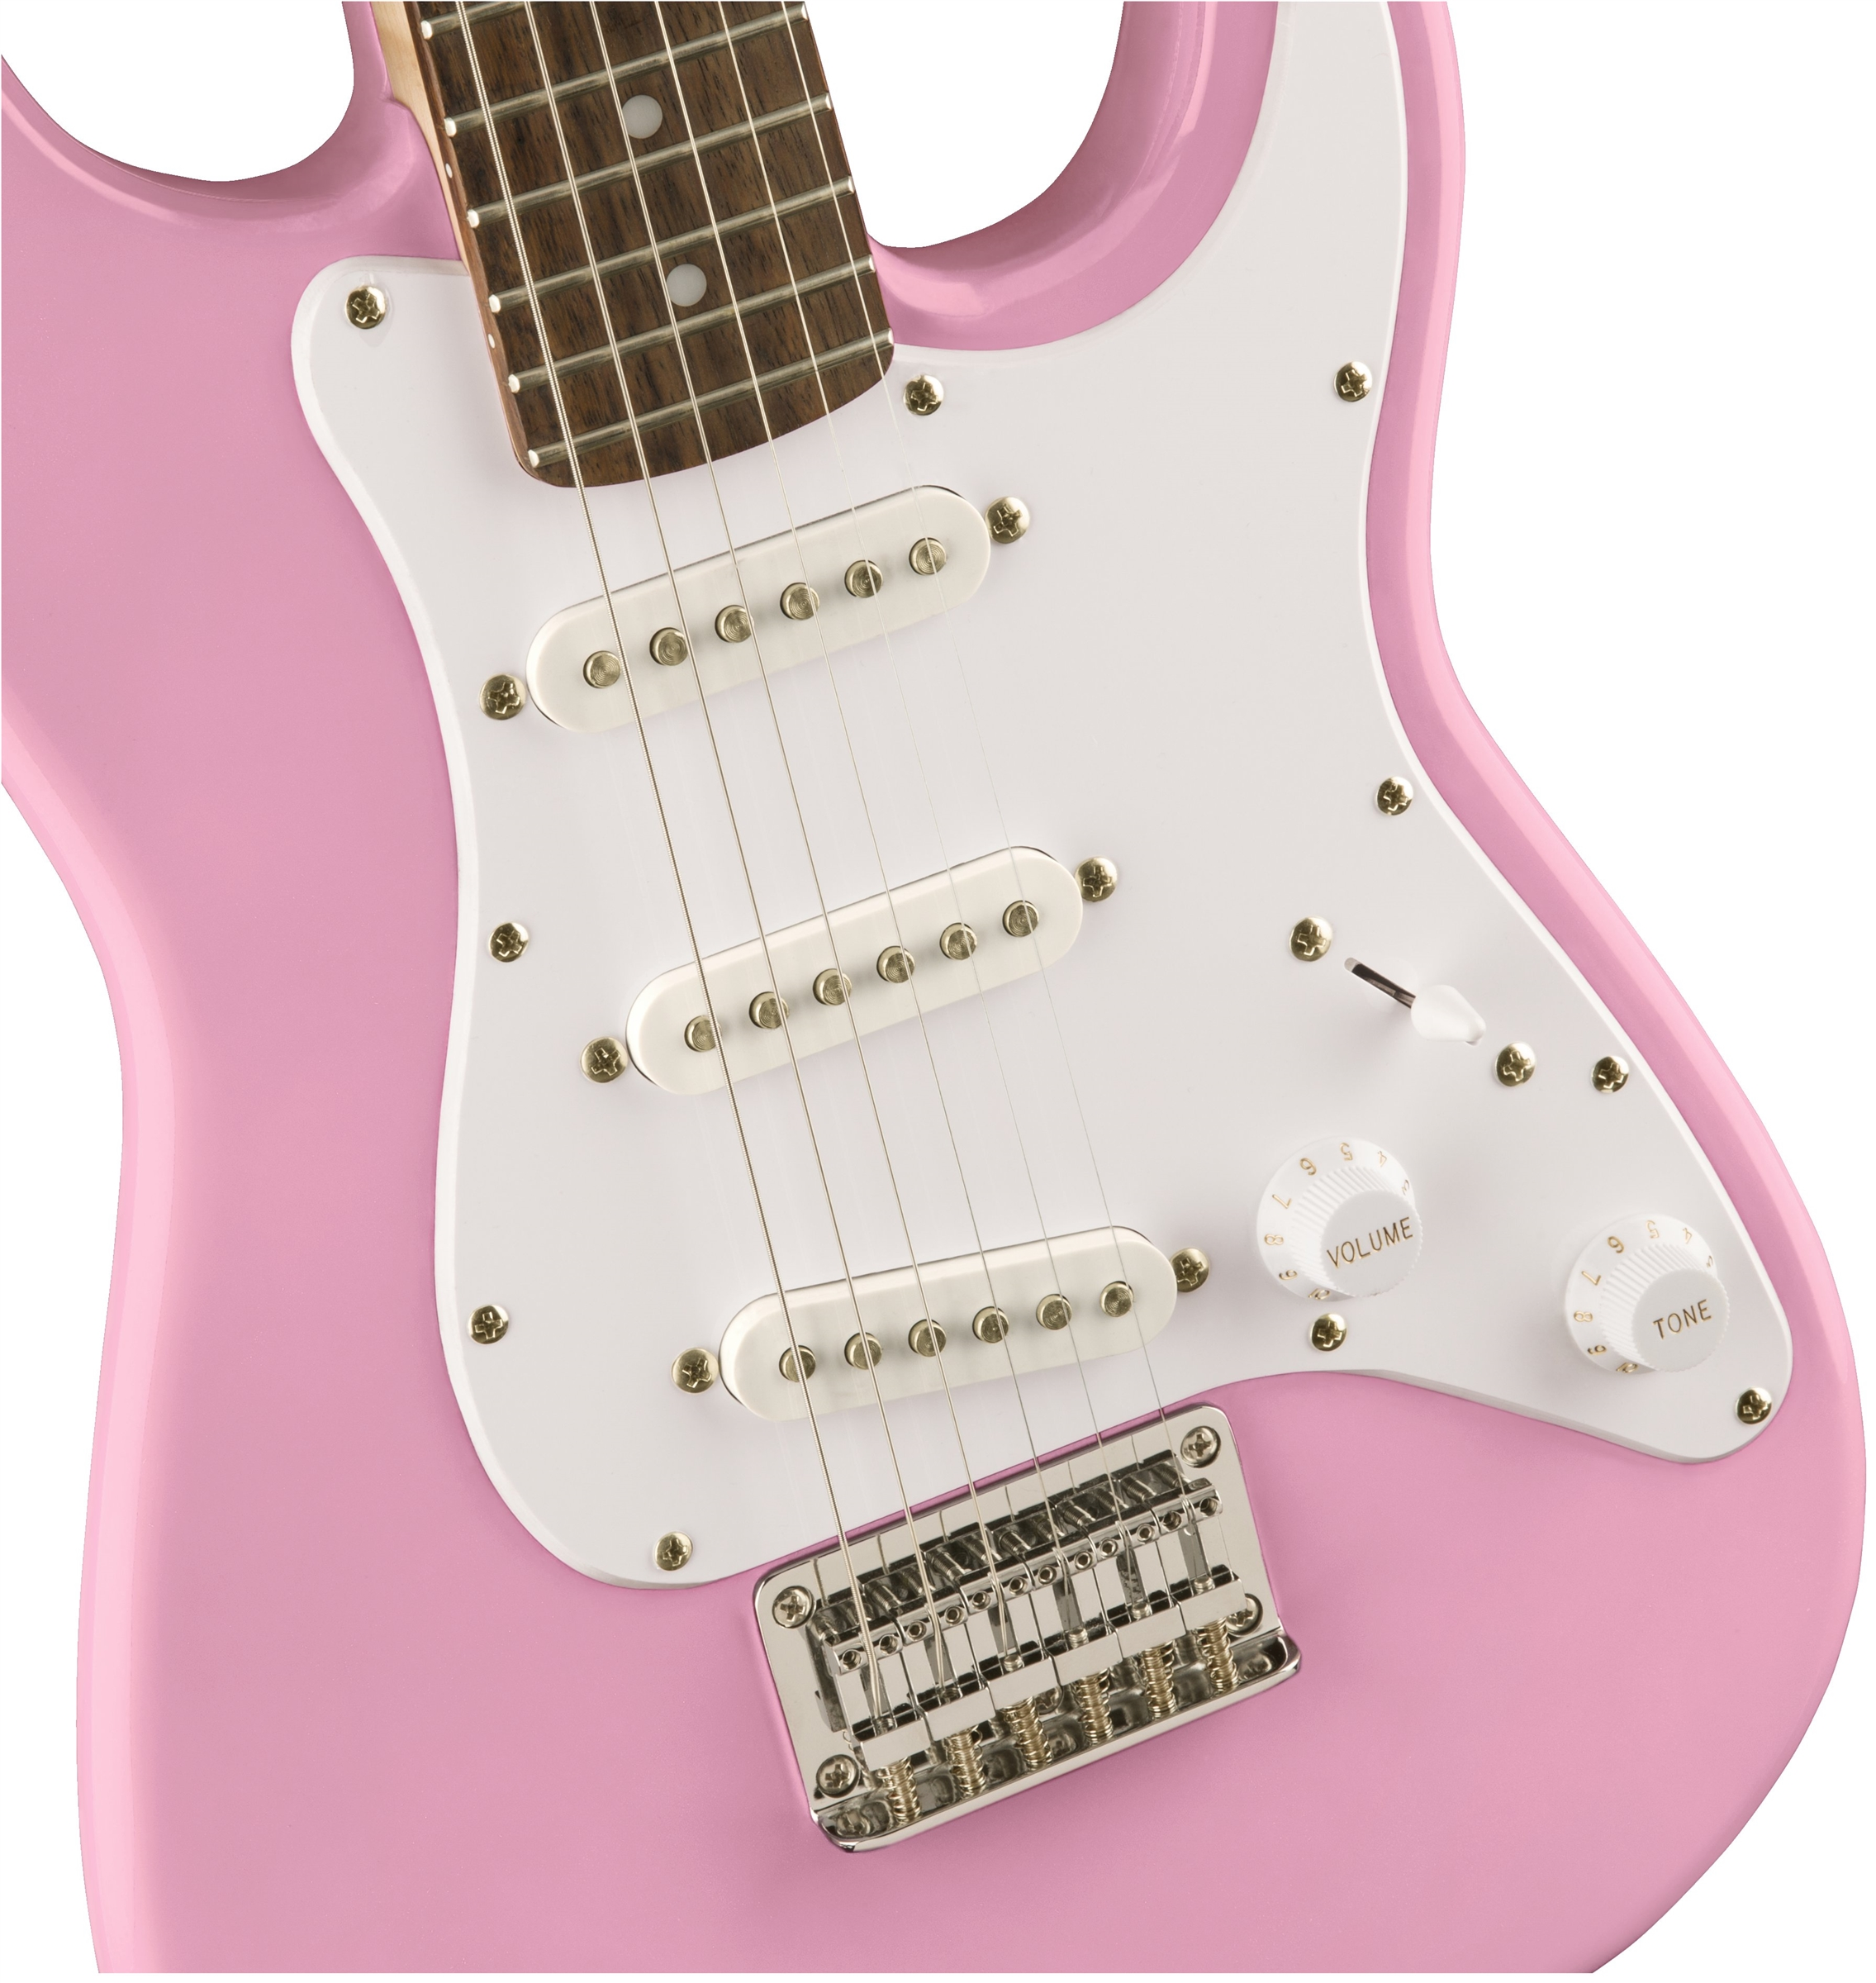 Fender Squier Mini Jack Wiring Diagram Libraries Electric Guitar Squire Librarymini Strat Guitars Tap To Expand